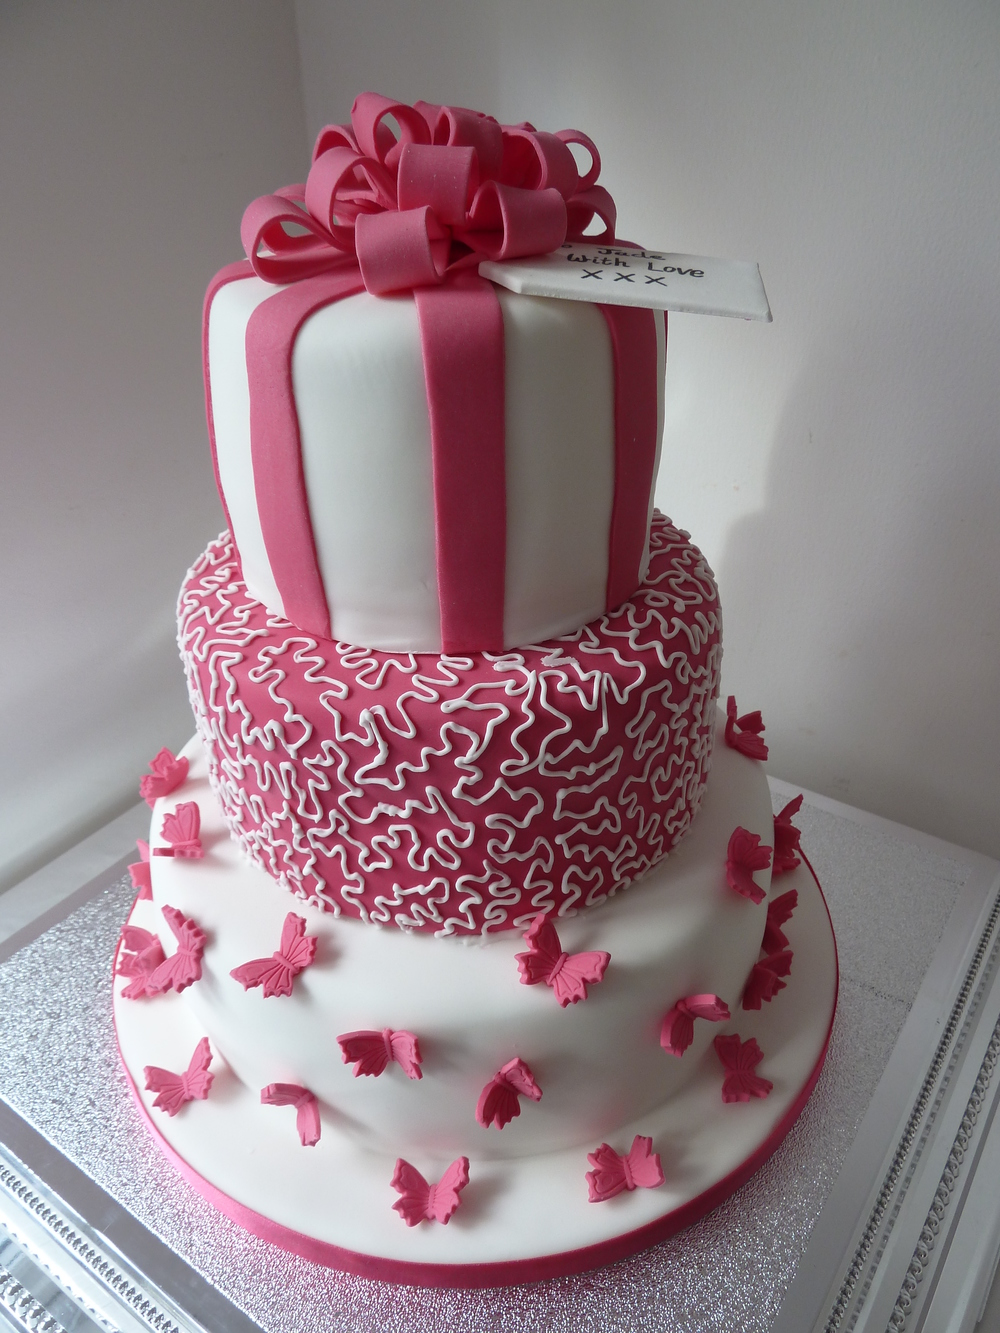 three-tier-pink-and-white-birthday-cake.jpg